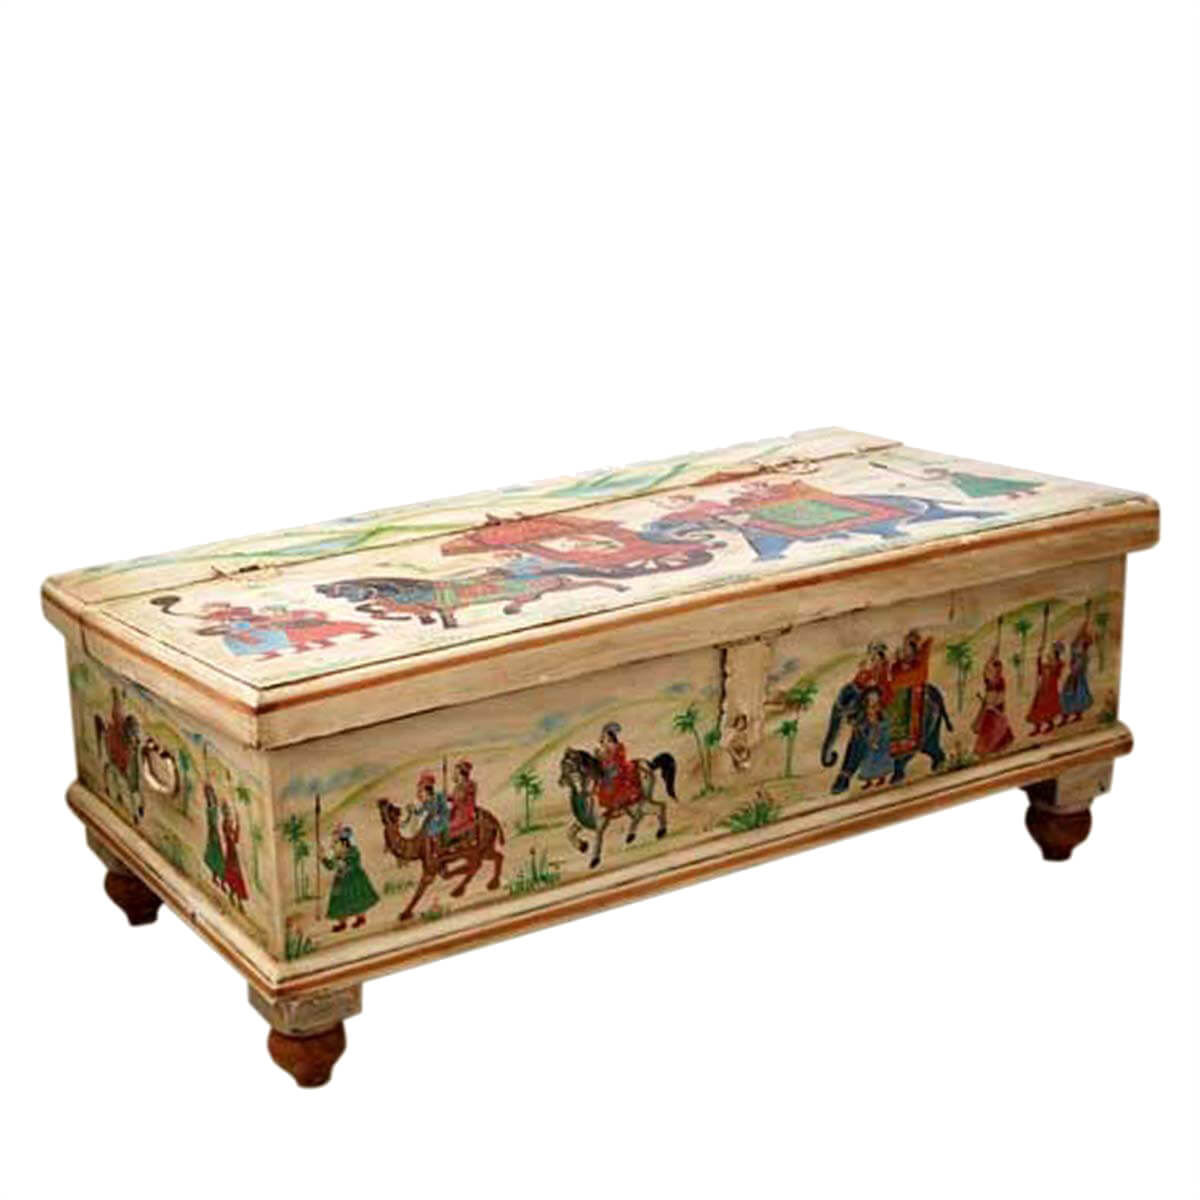 Hand painted storage hope chest wood coffee table large hand painted storage hope chest wood coffee table geotapseo Gallery